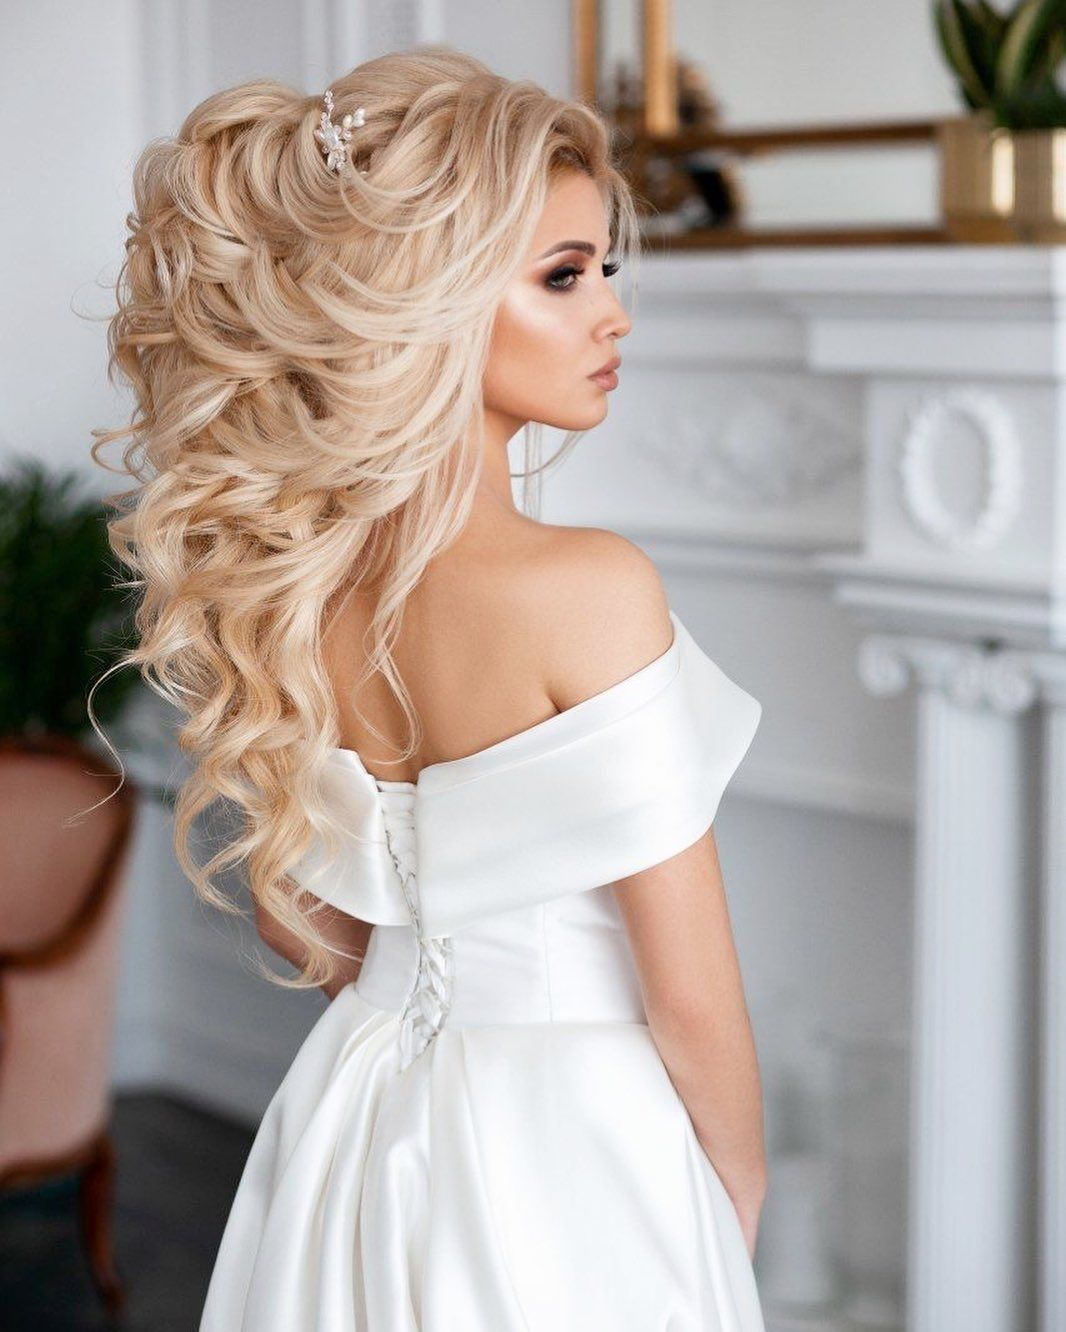 15+ When to get hair extensions before wedding ideas